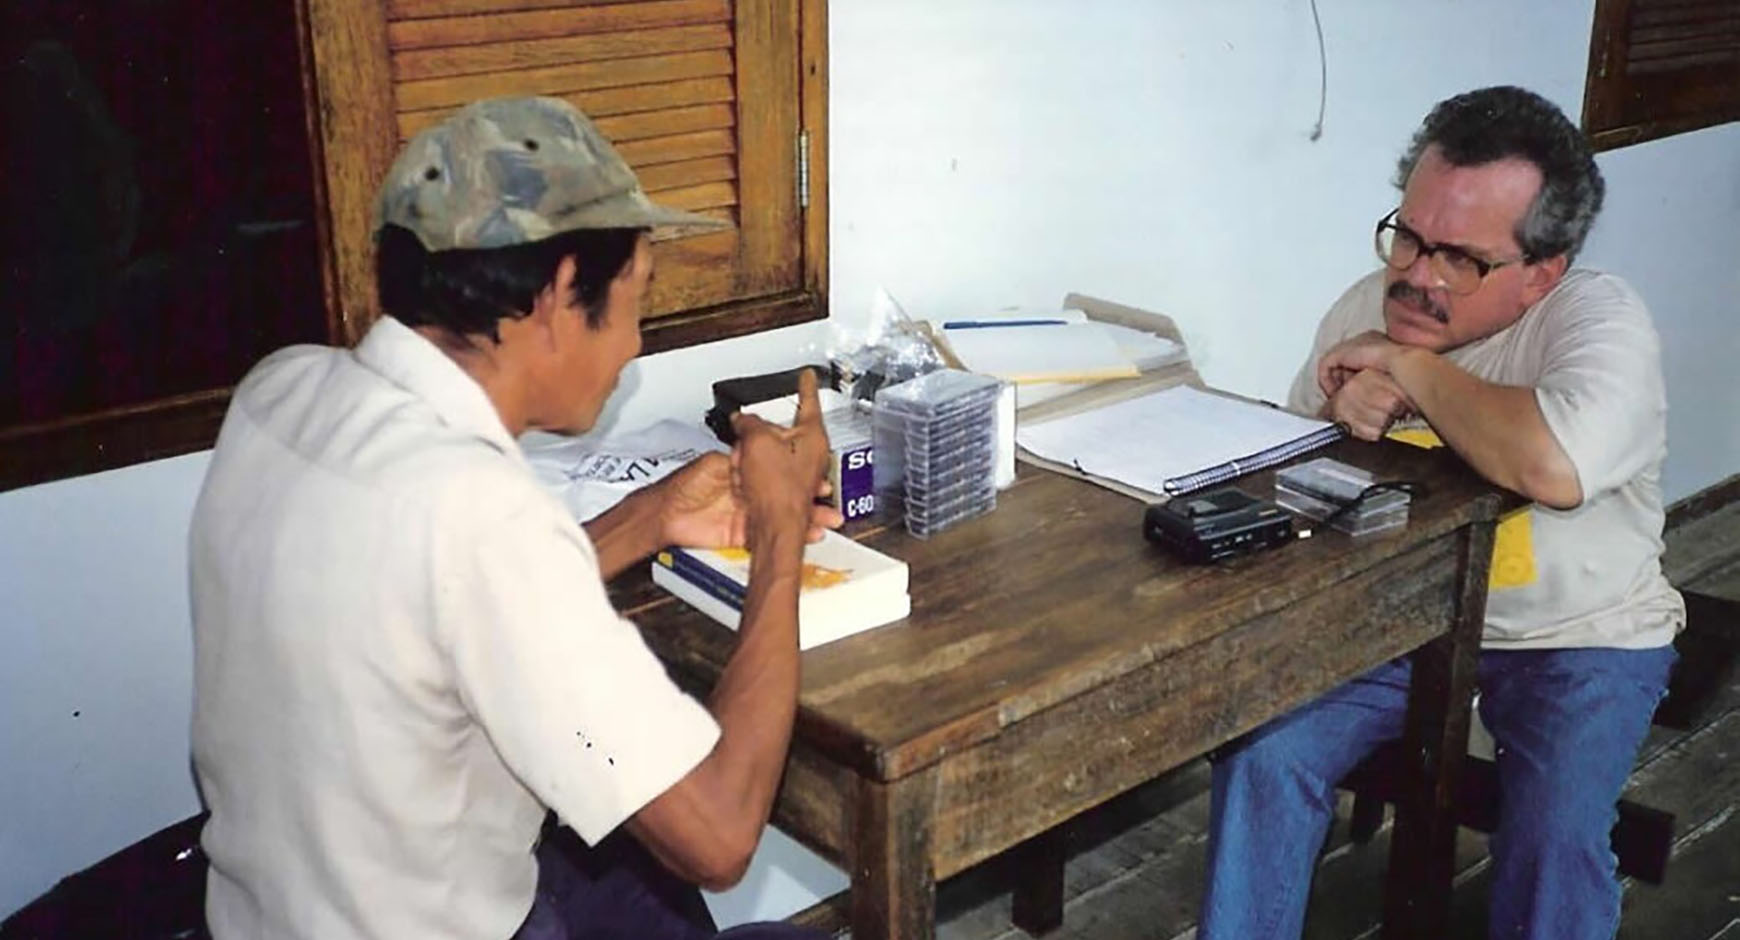 two men having a discussion at a wooden table with audio cassettes and notebooks on it.